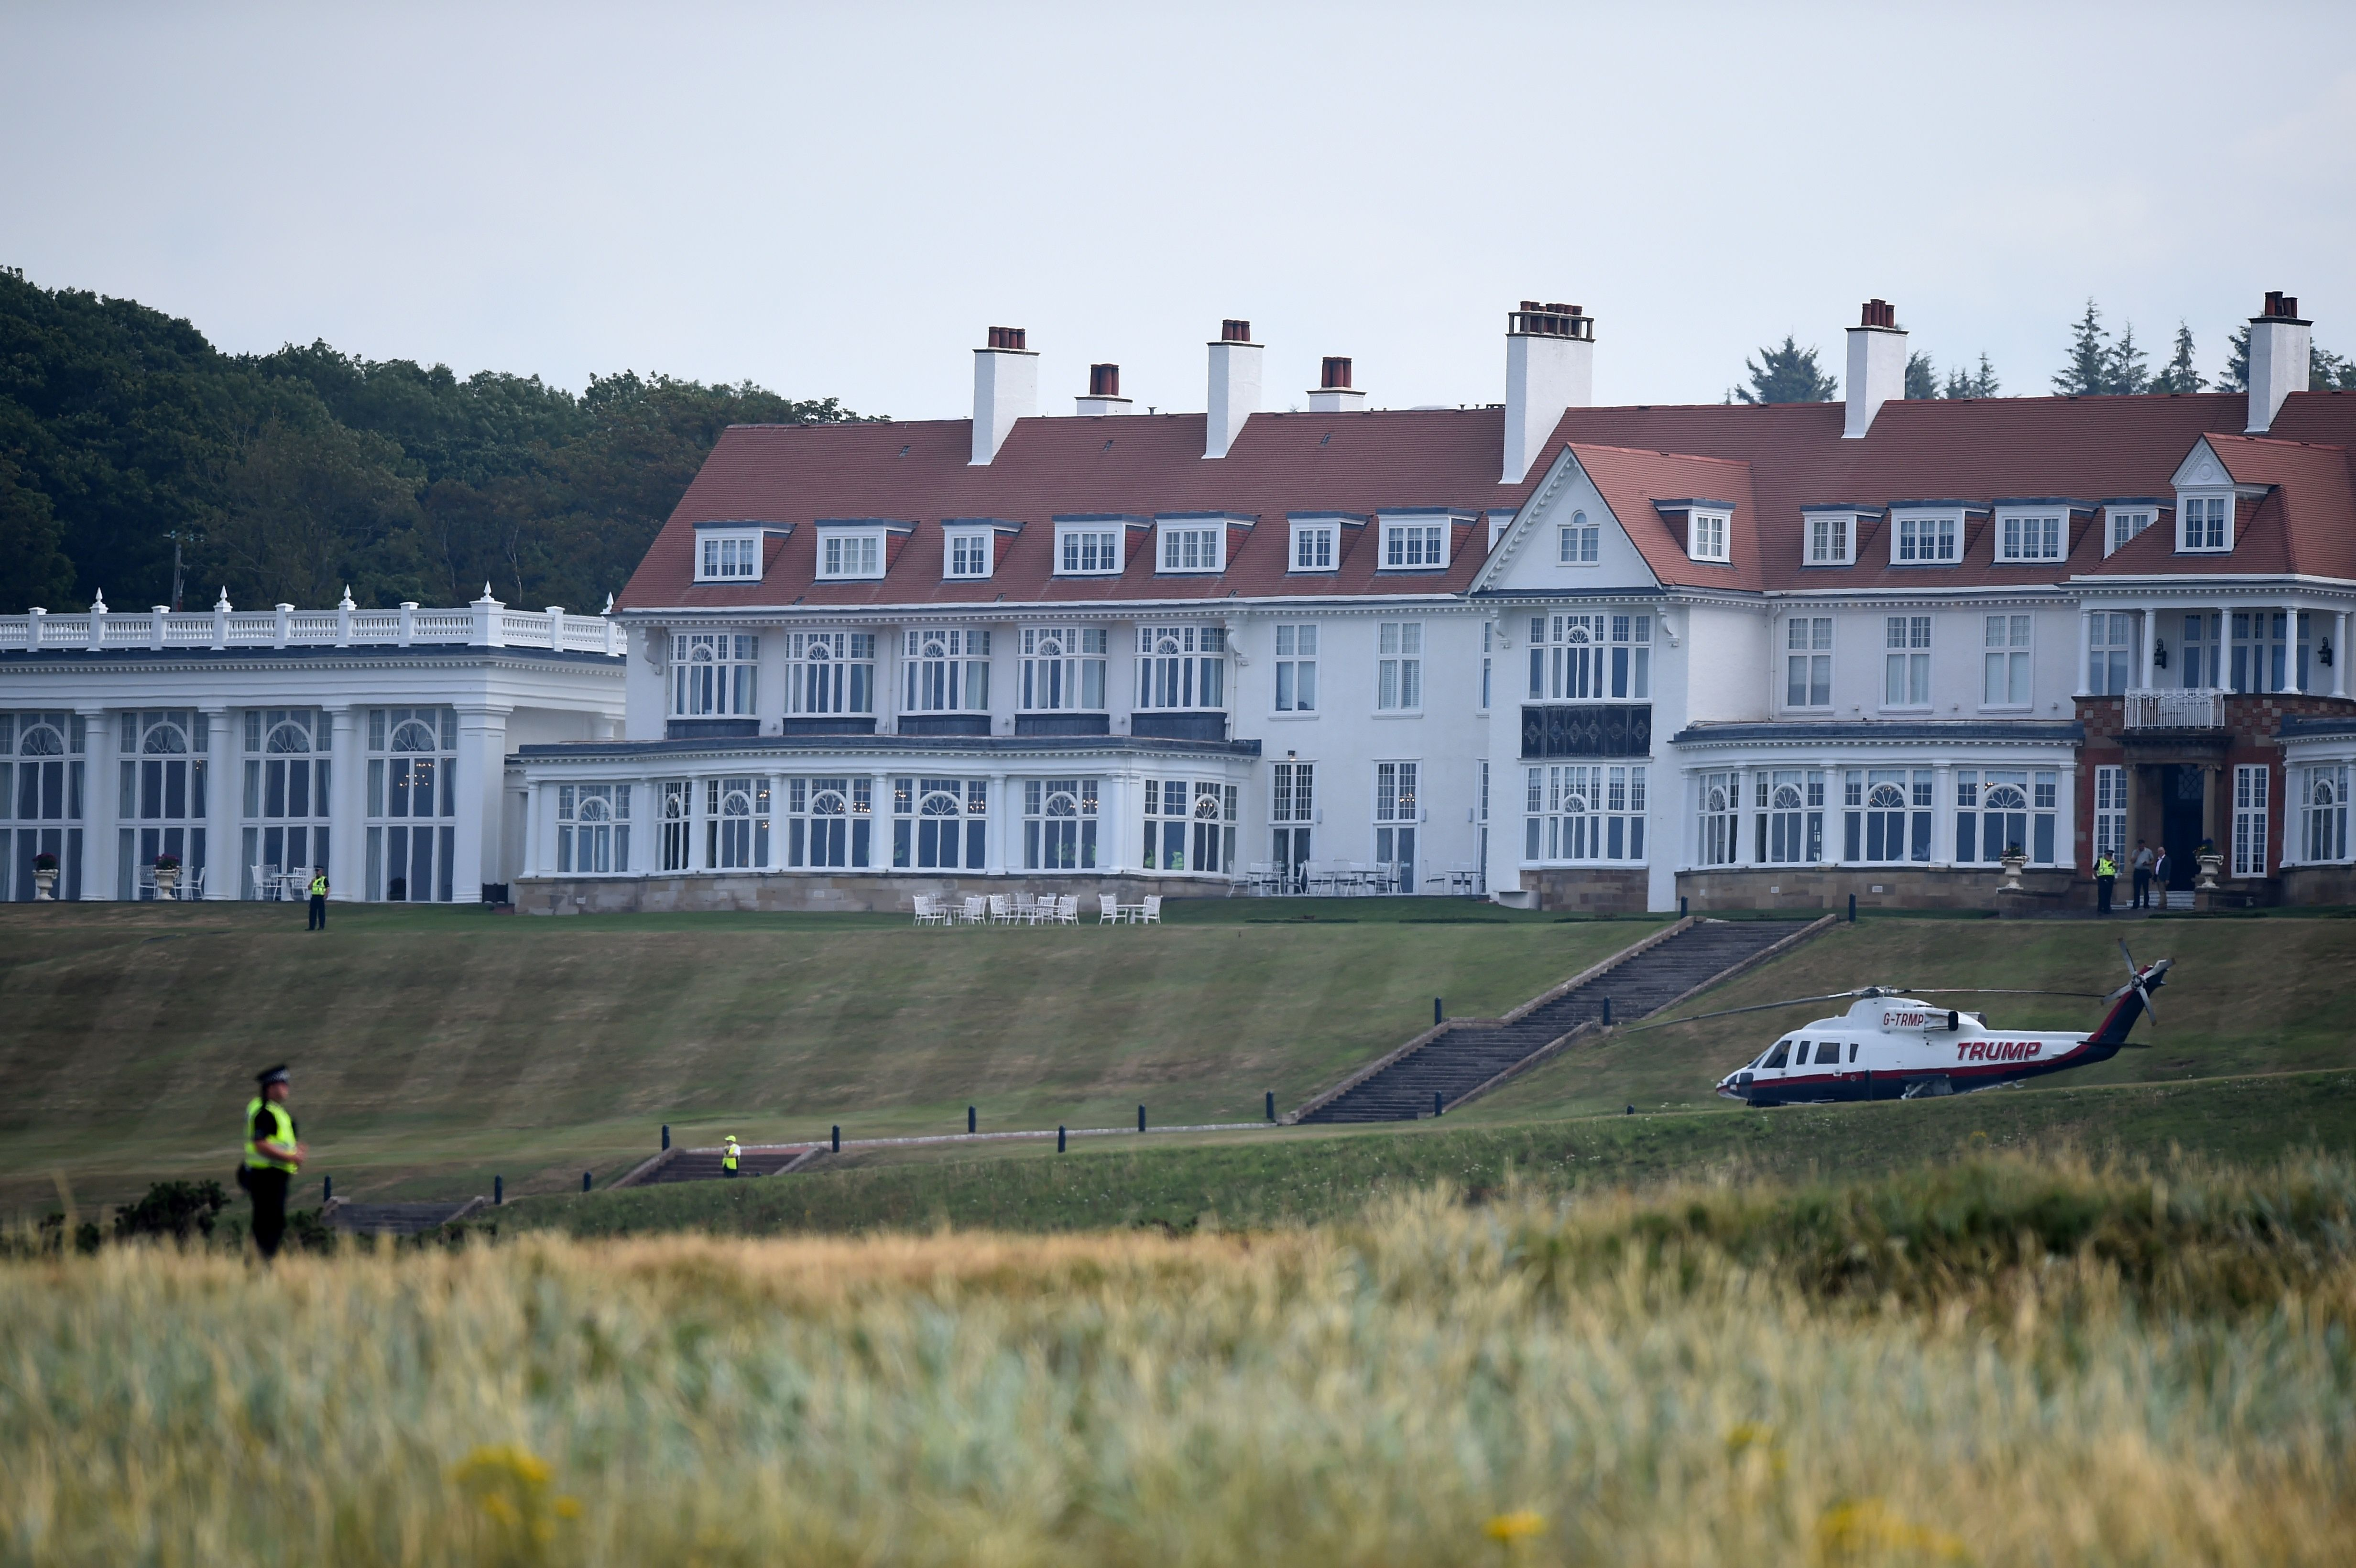 Police offficers stand guard at Trump Turnberry, the luxury golf resort of US President Donald Trump, in Turnberry, southwest of Glasgow, Scotland on July 14, 2018, during the private part of his four-day UK visit. - US President Donald Trump wraps up a four-day visit to Britain, dominated by his blasting of Prime Minister Theresa May's Brexit strategy, by spending the weekend in Scotland. (Photo by ANDY BUCHANAN/AFP/Getty Images)